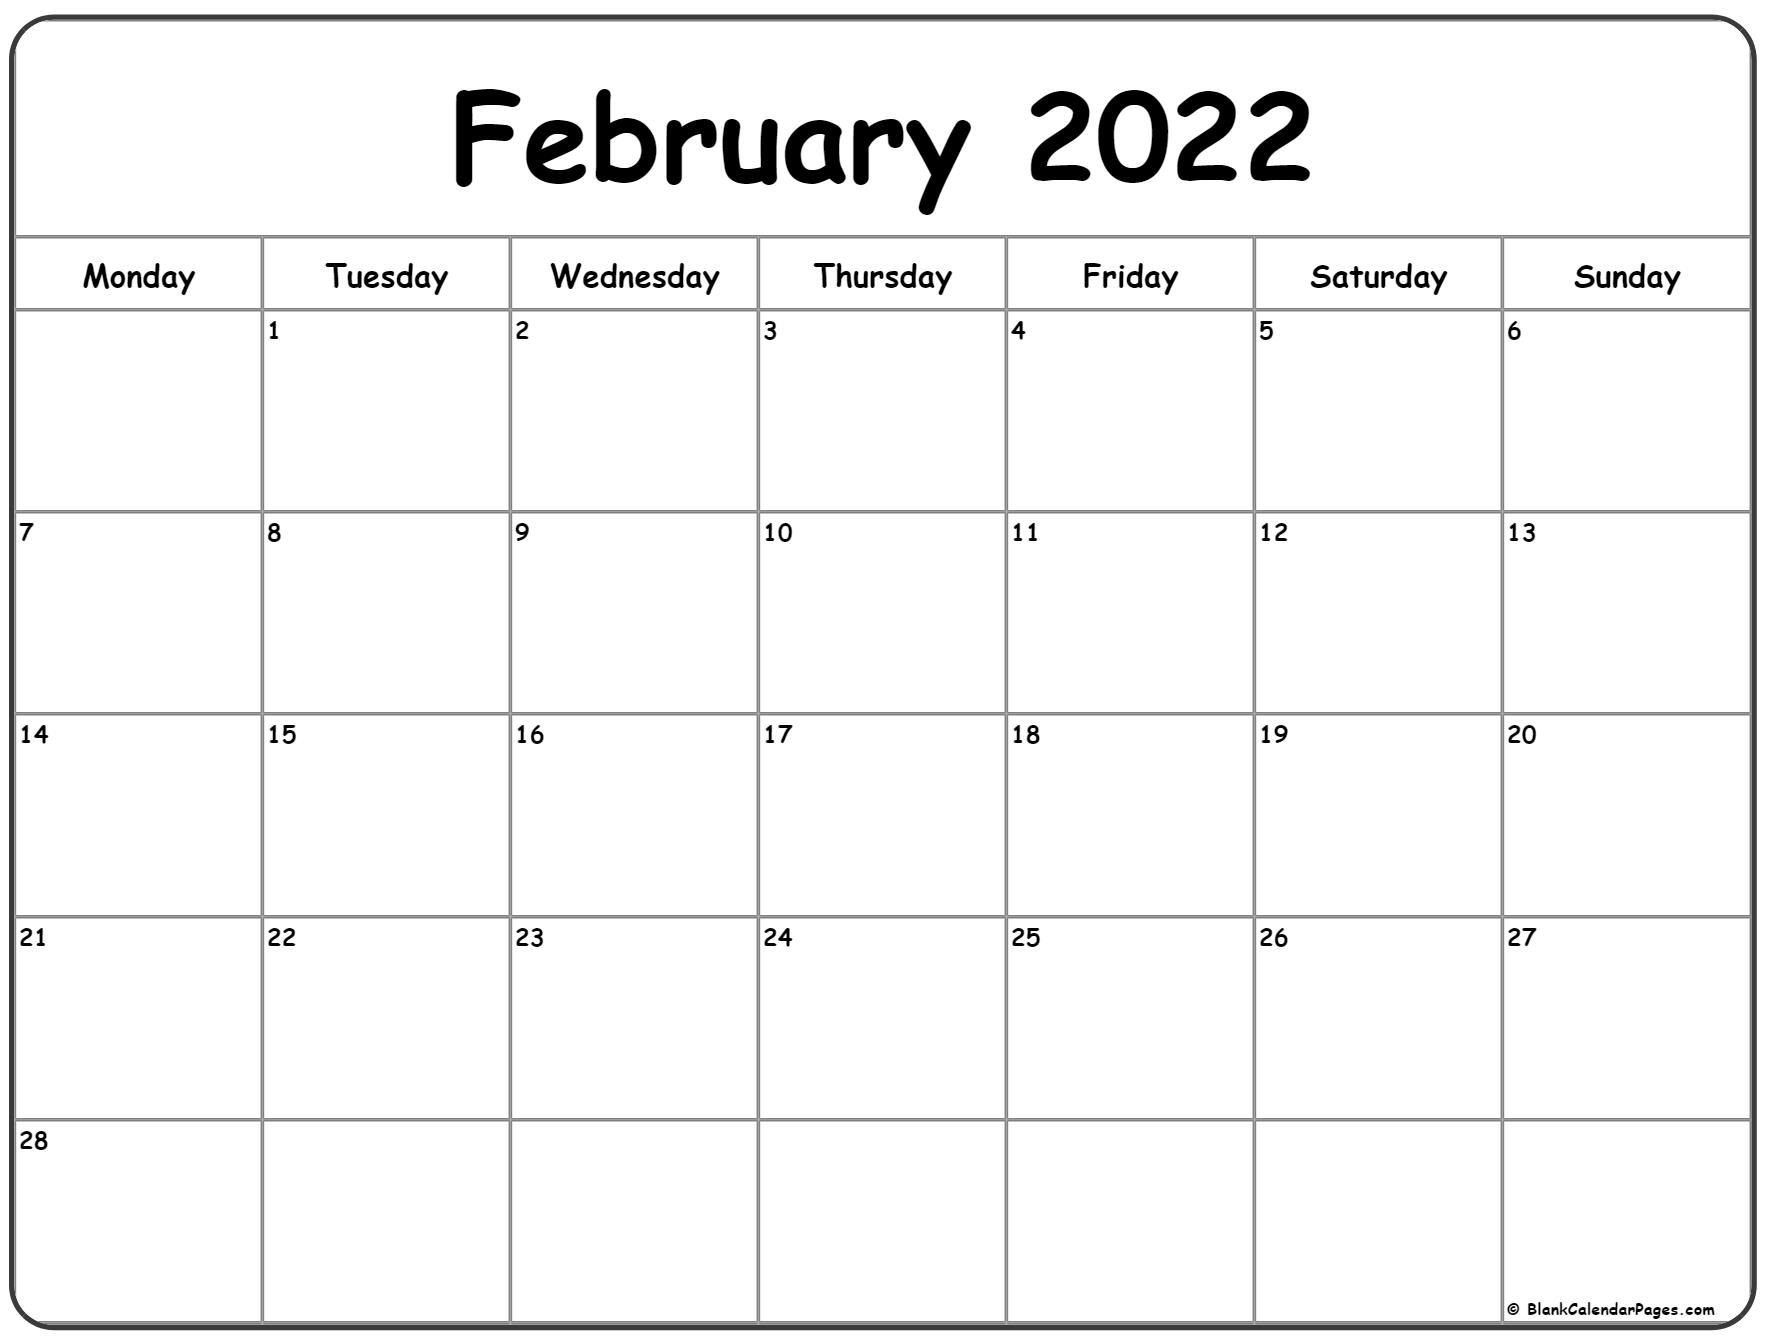 February 2022 Monday Calendar | Monday To Sunday